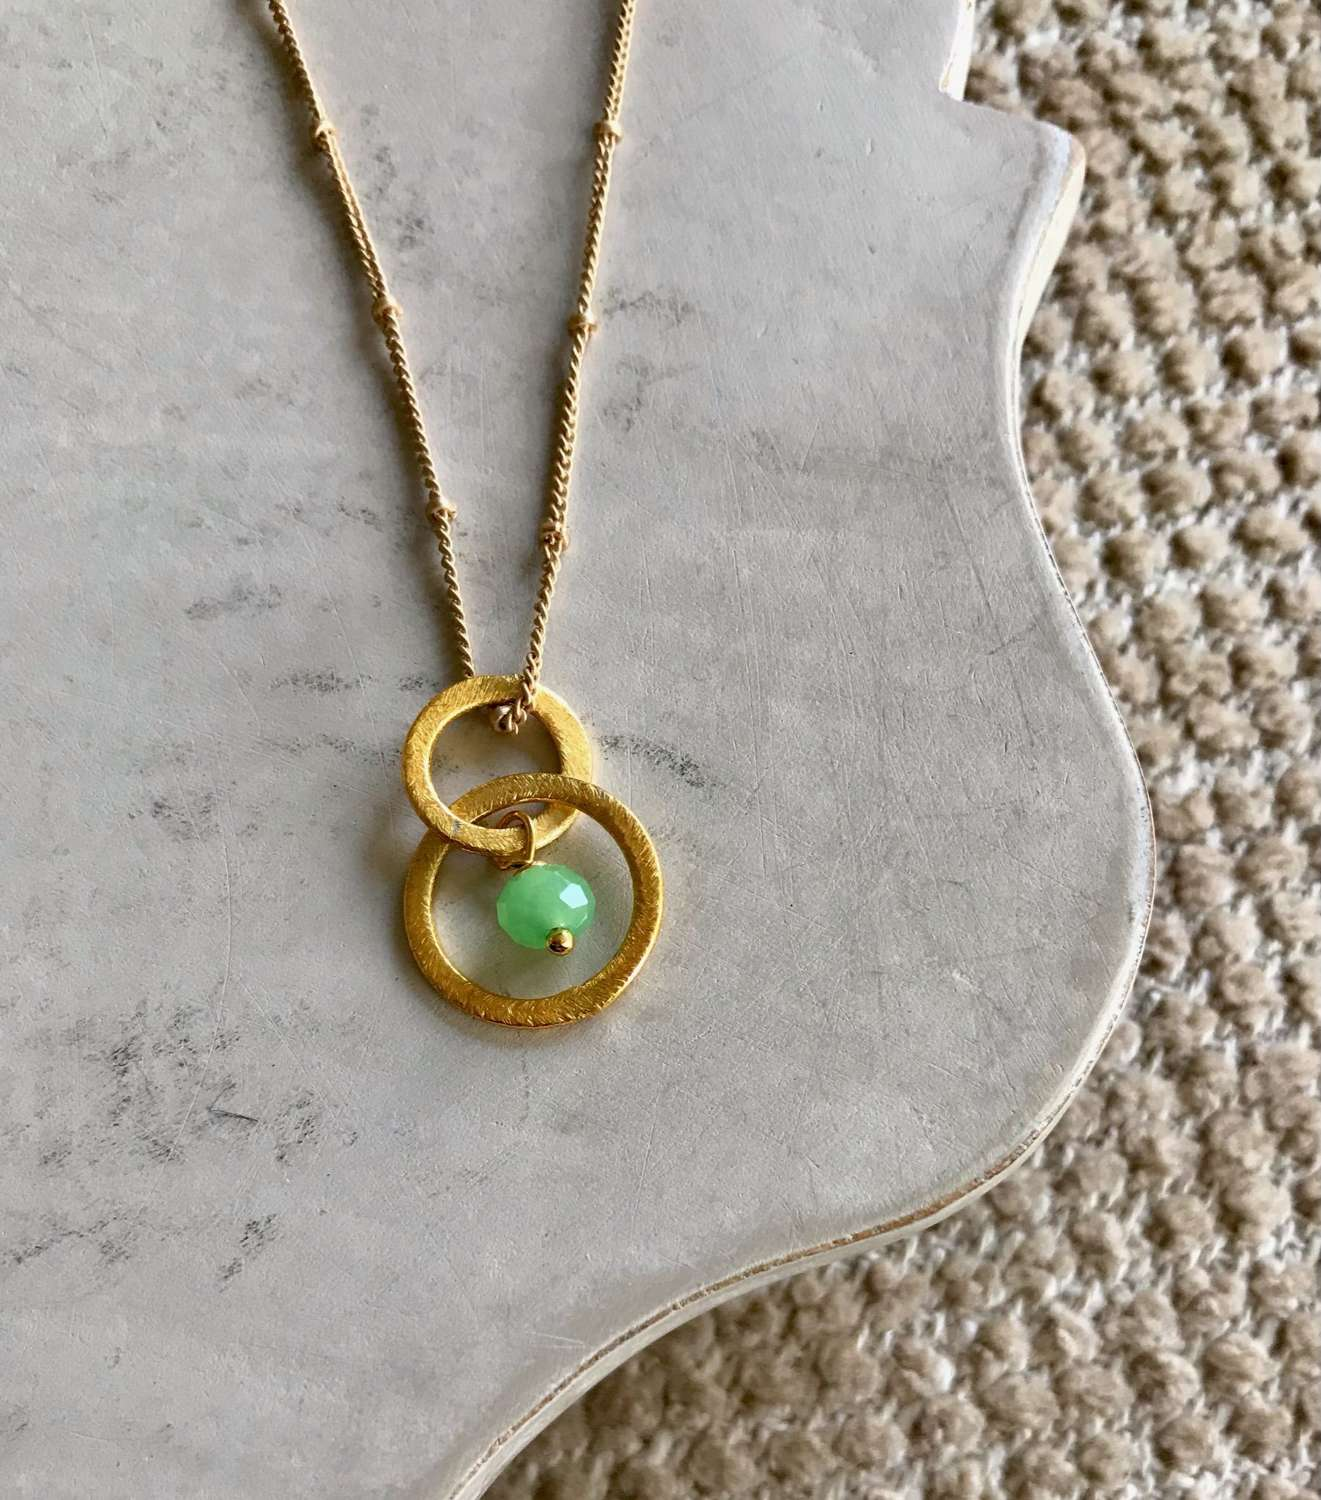 Lesley necklace - gold/green